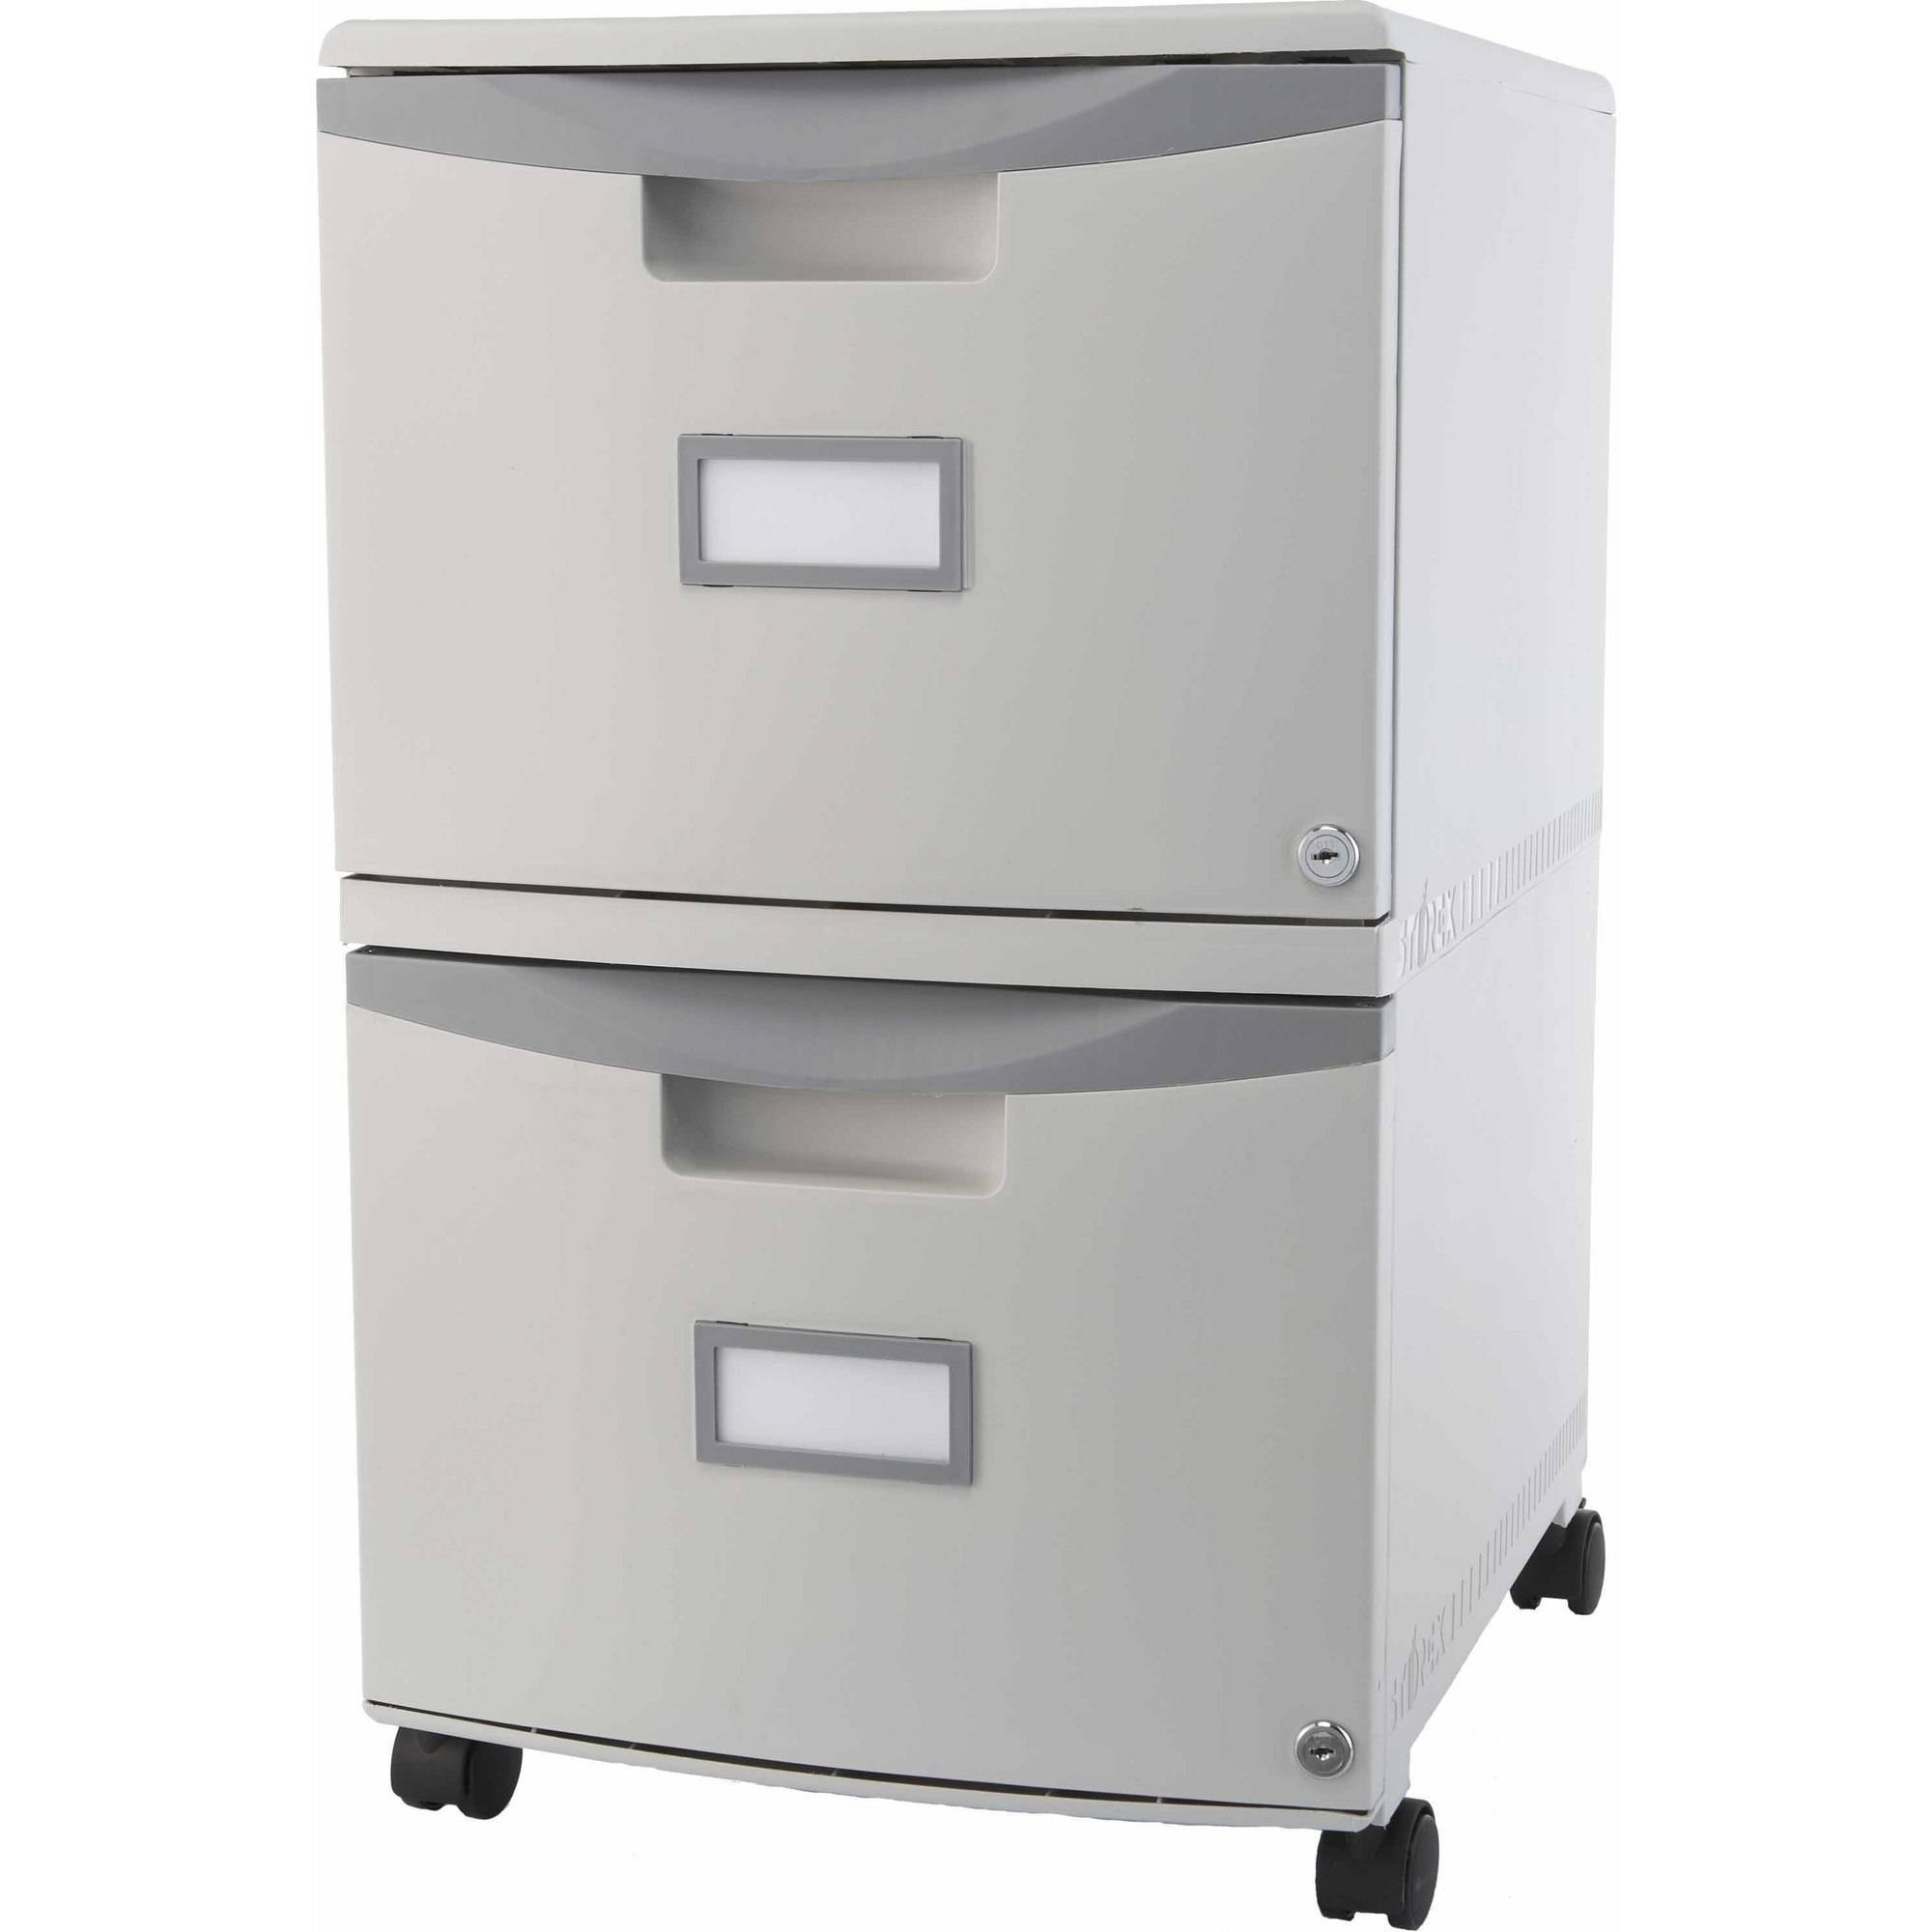 Gentil Storex 2 Drawer Mobile File Cabinet With Lock And Casters, Legal/Letter